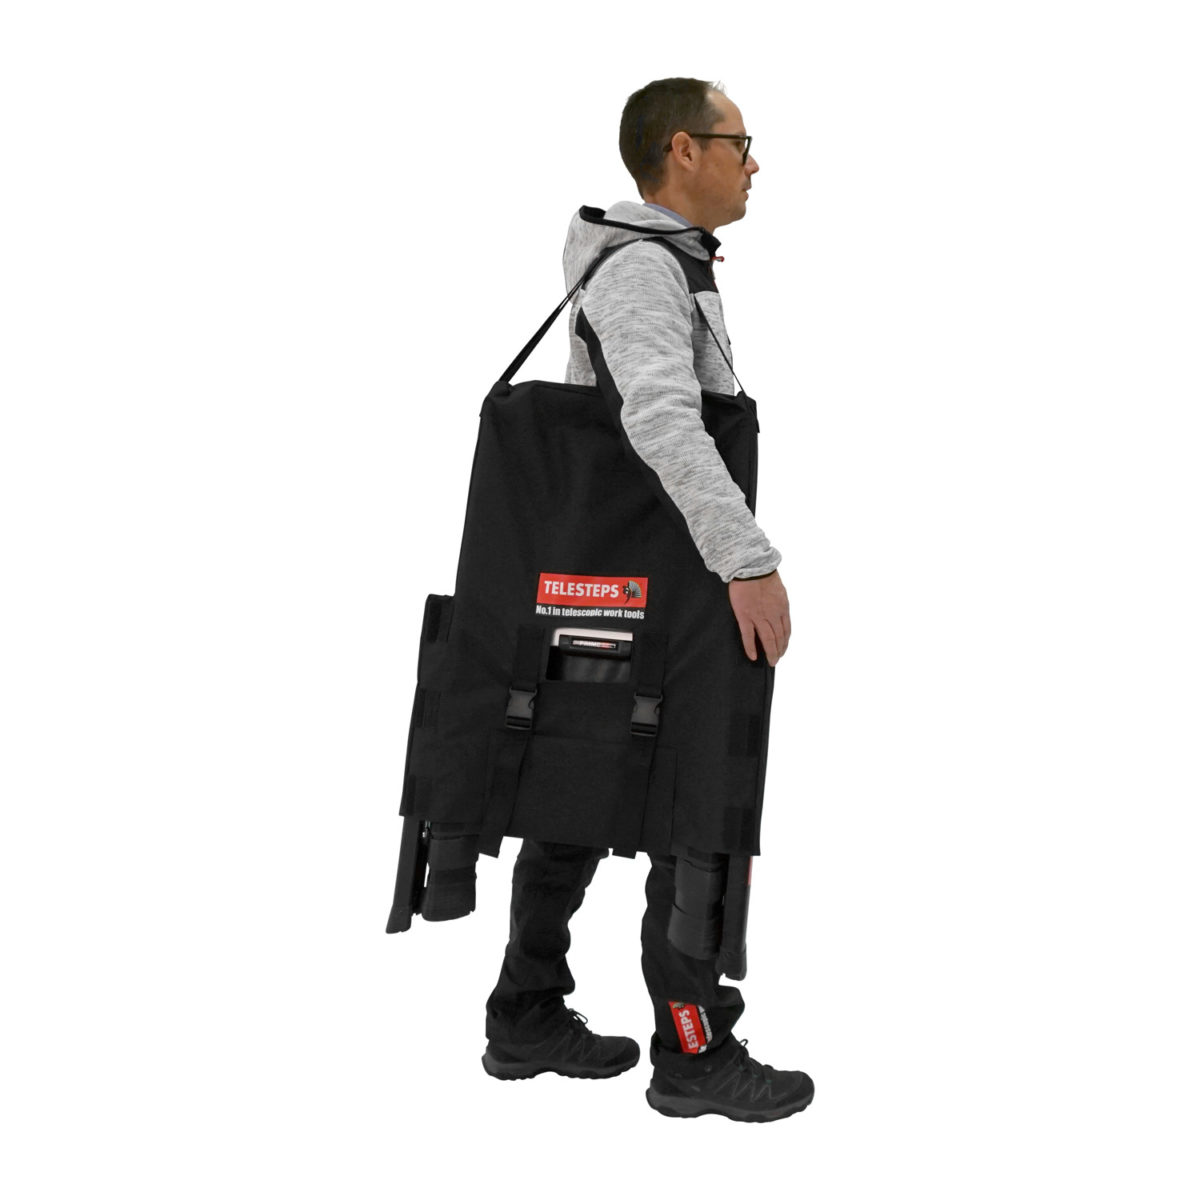 Carry bag for telescopic ladders.